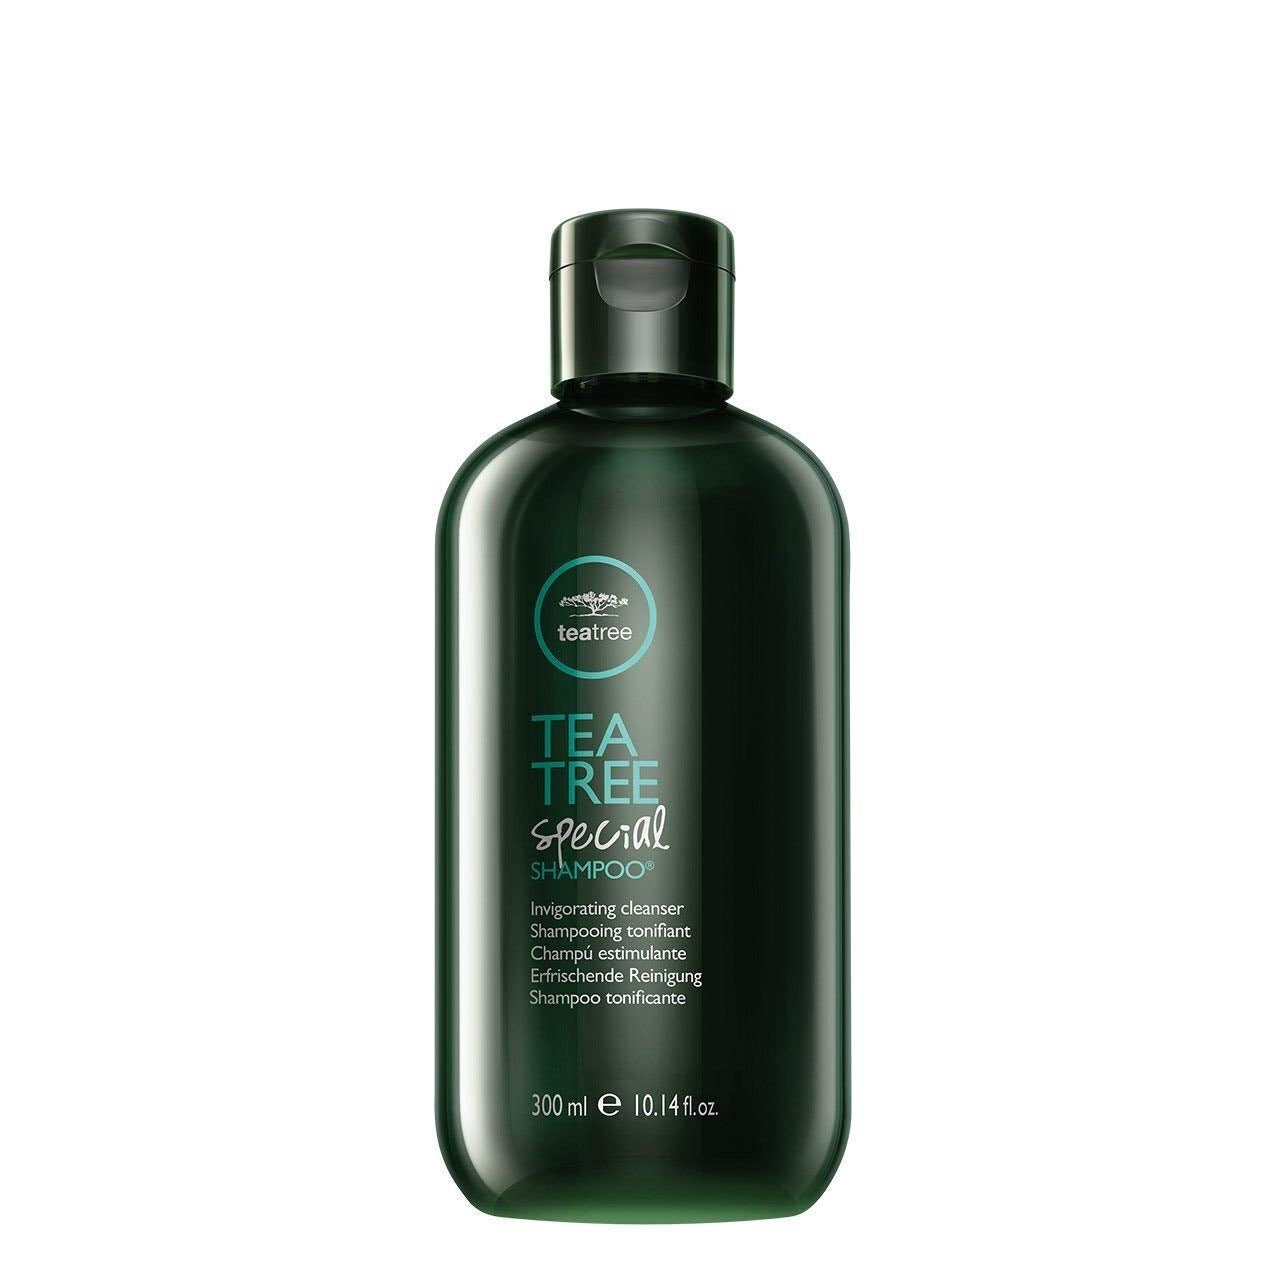 6 Tea Tree Shampoos To Try For A Balanced, Happy Scalp